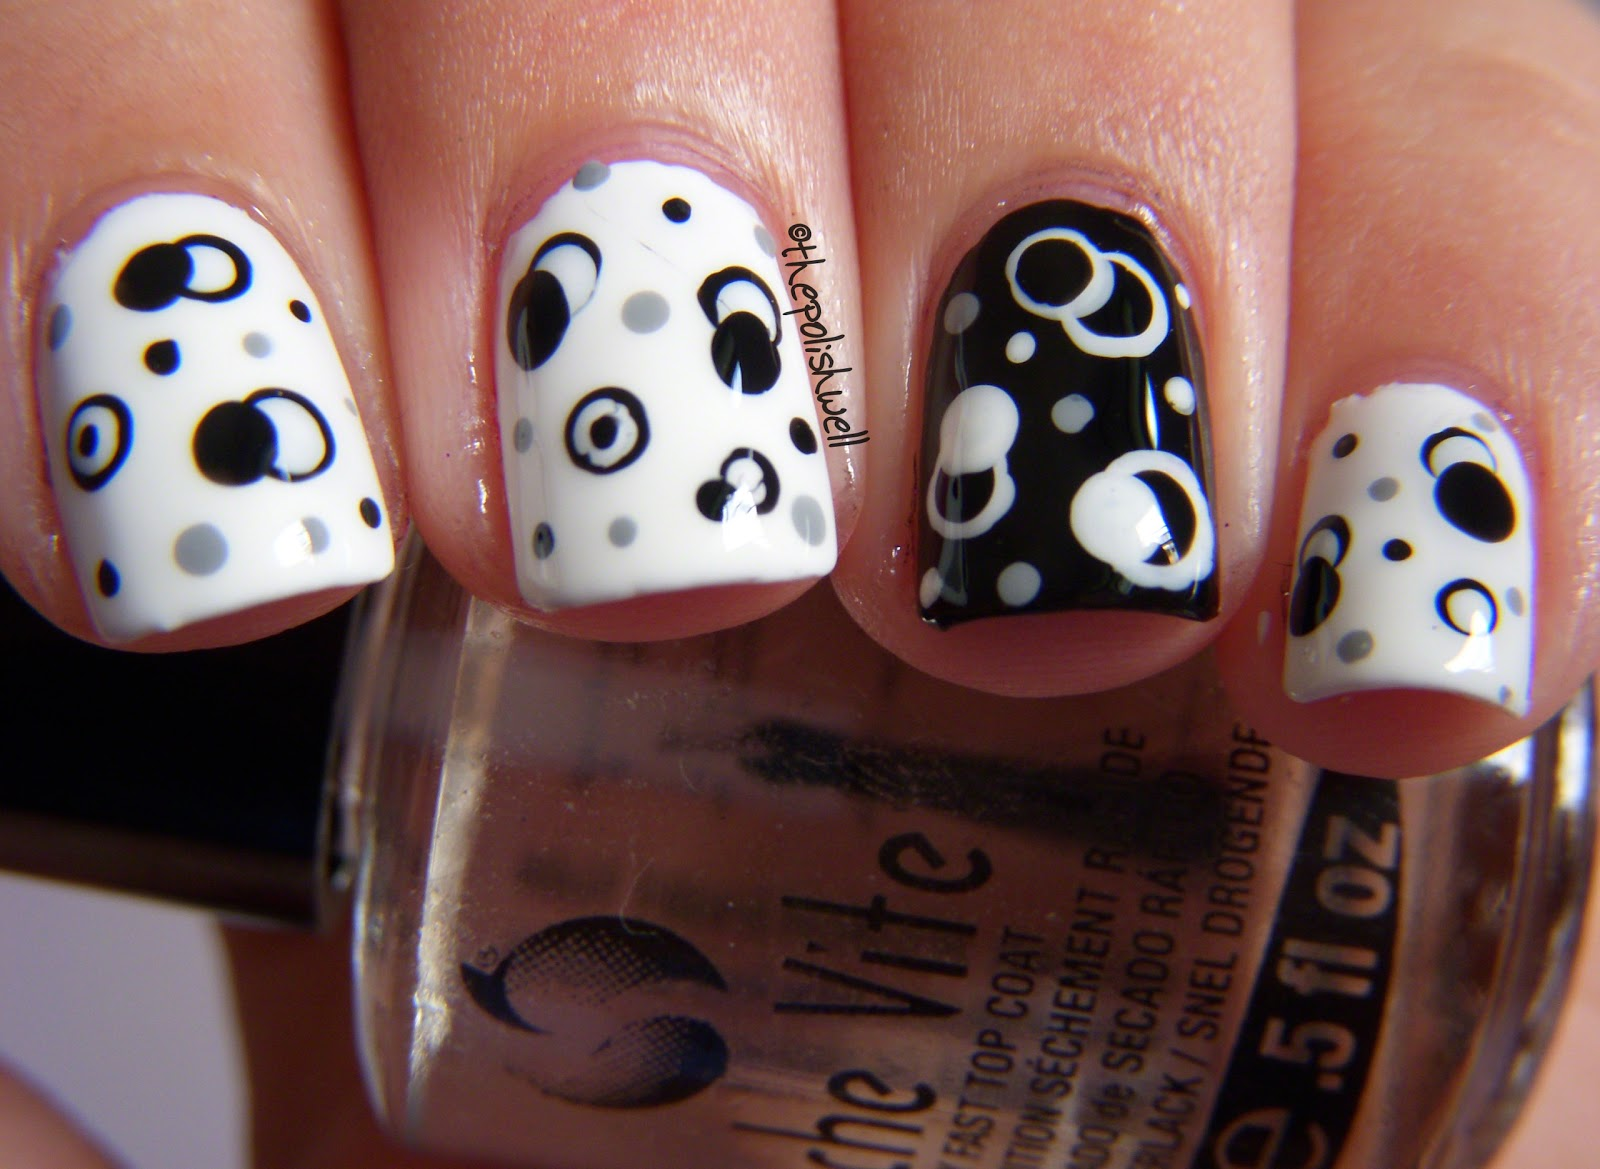 The Appealing Black nail art designs Photograph